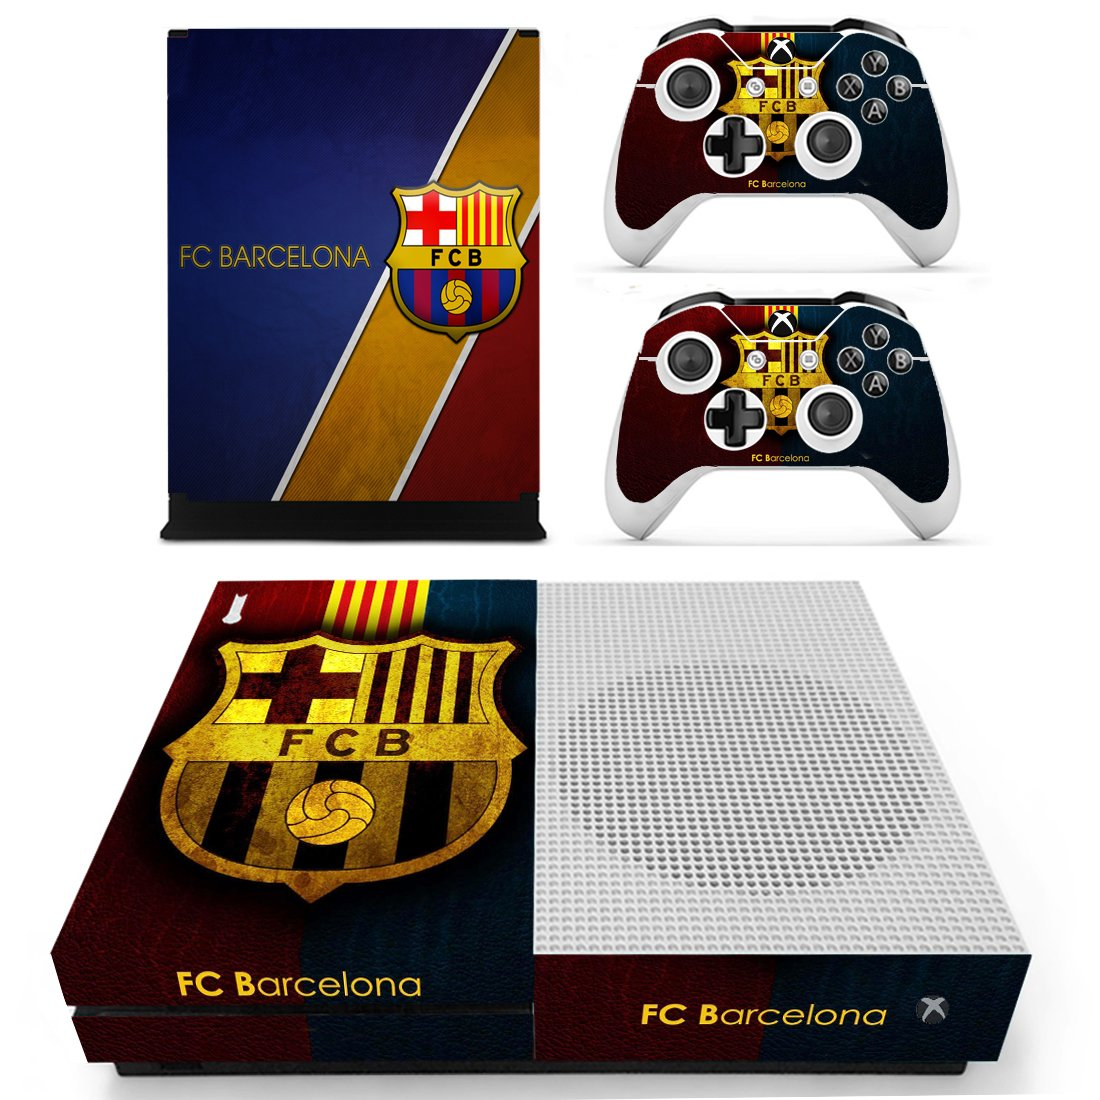 Barcelona Xbox One S Skin Sticker Wrap